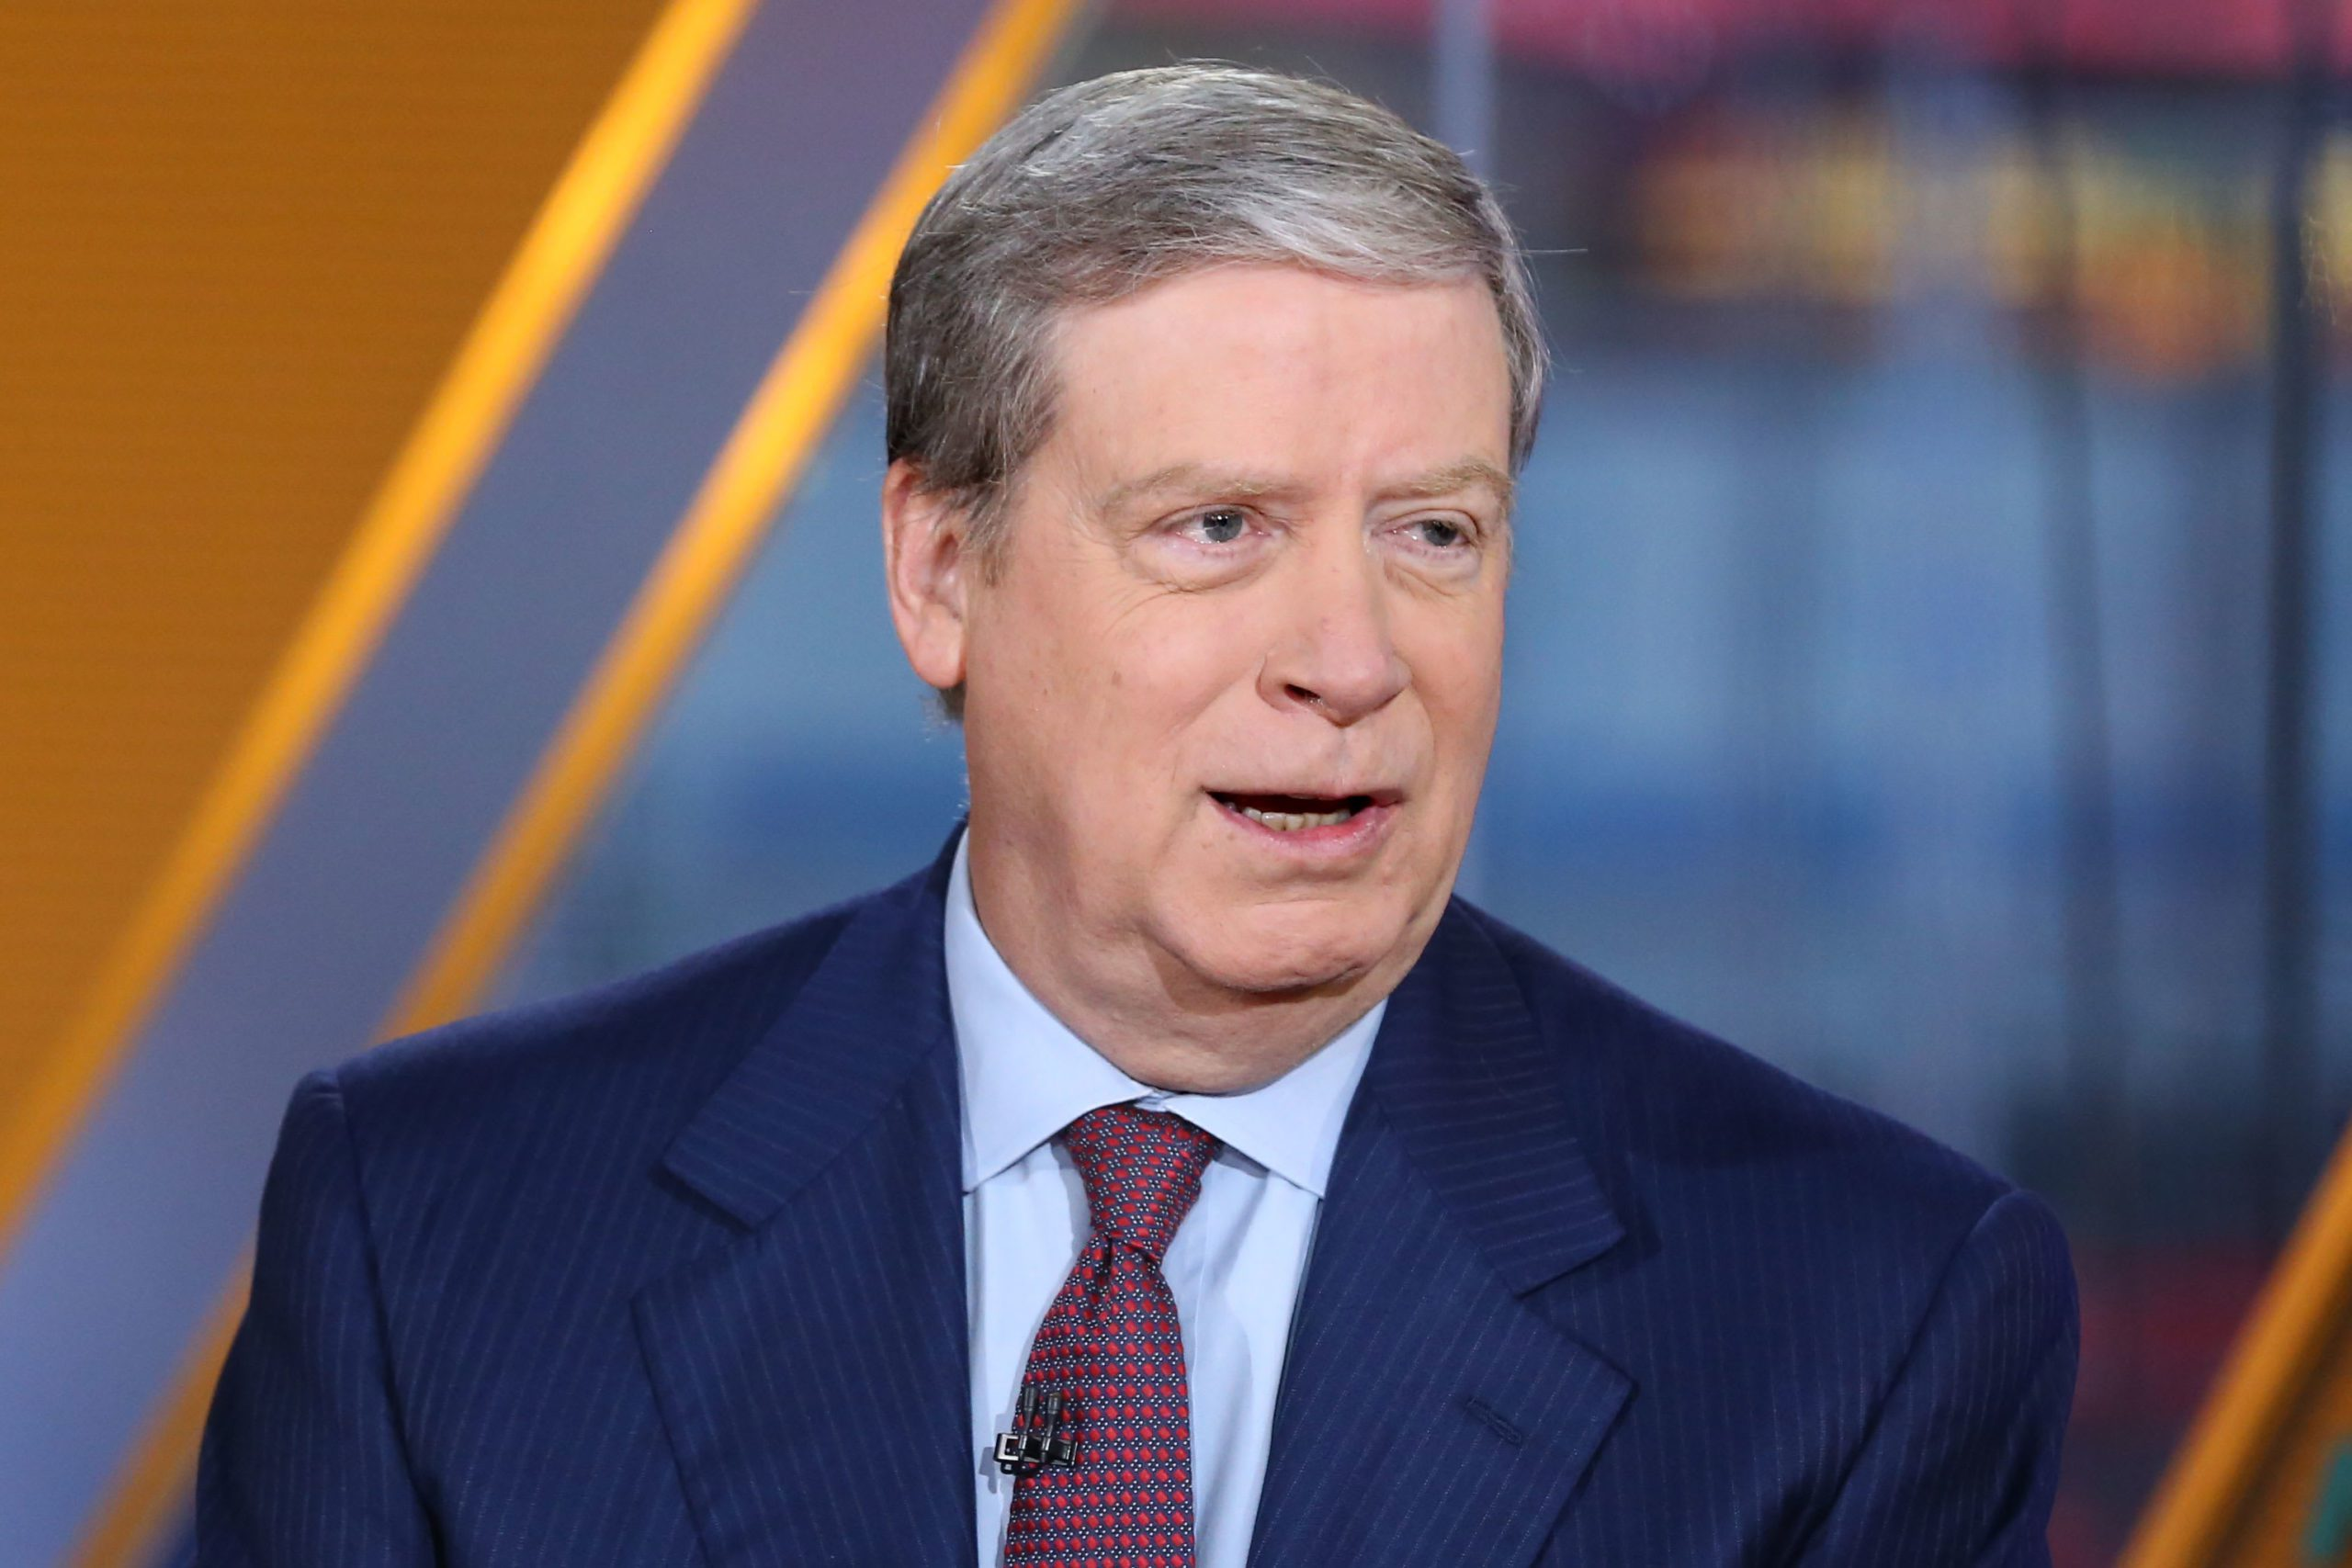 stanley-druckenmiller-says-the-stock-market-is-in-an-'absolute-raging-mania'